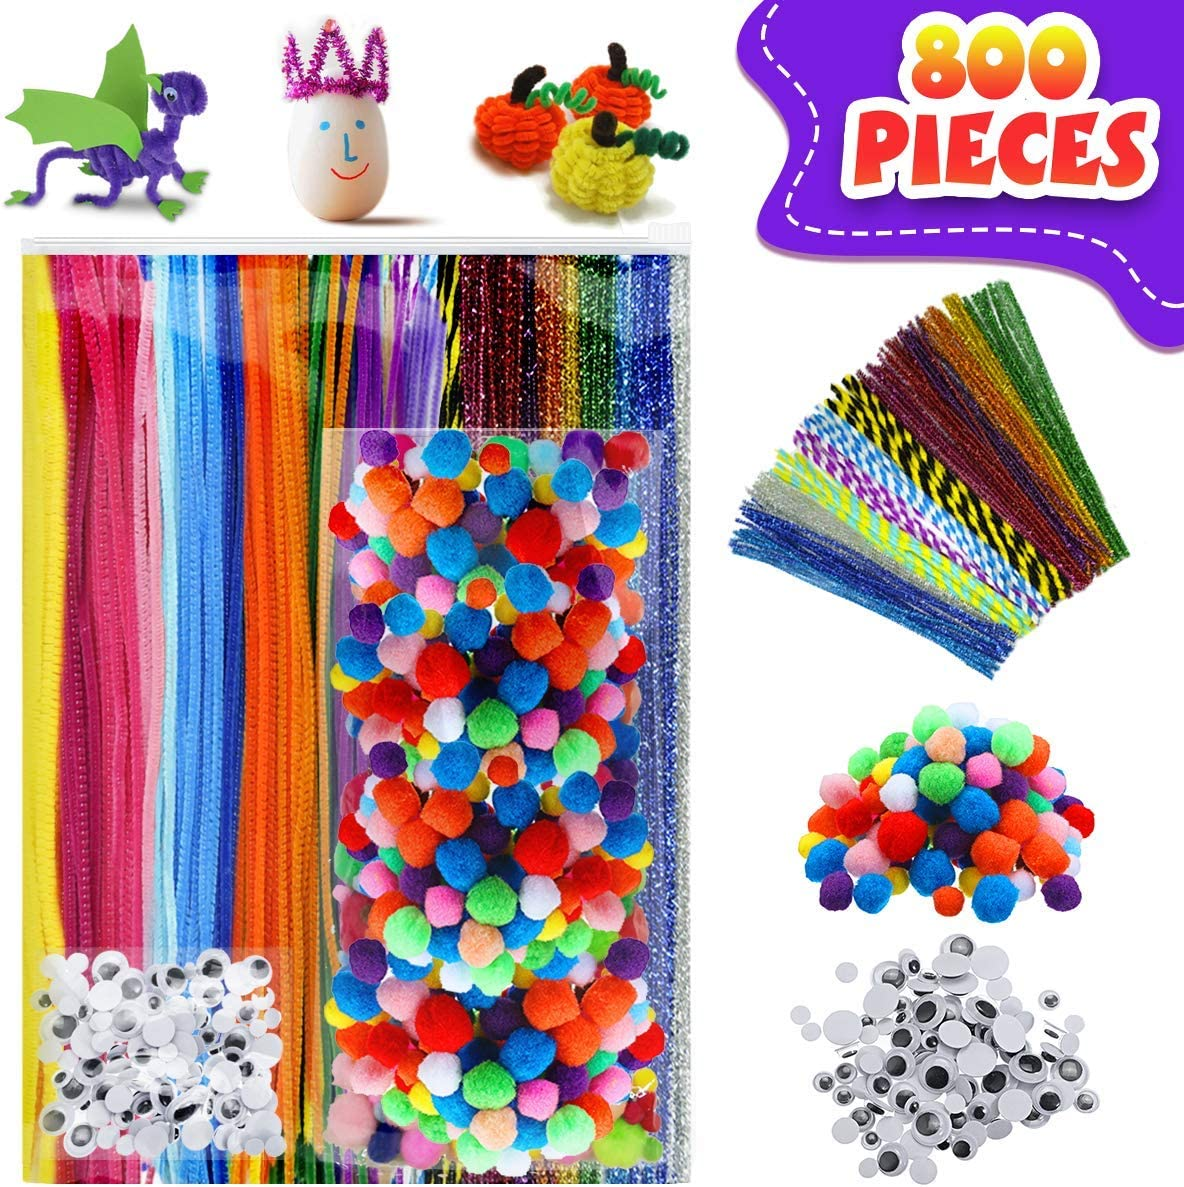 250pcs Assorted Pompoms 40 Assorted Colors Pipe Cleaners Pipe Cleaners for DIY Art Craft Decorations 800pcs Preschool Craft Supply Kit 150pcs Wiggle Eyes JOYXEON Chenille Stems for DIY Crafts